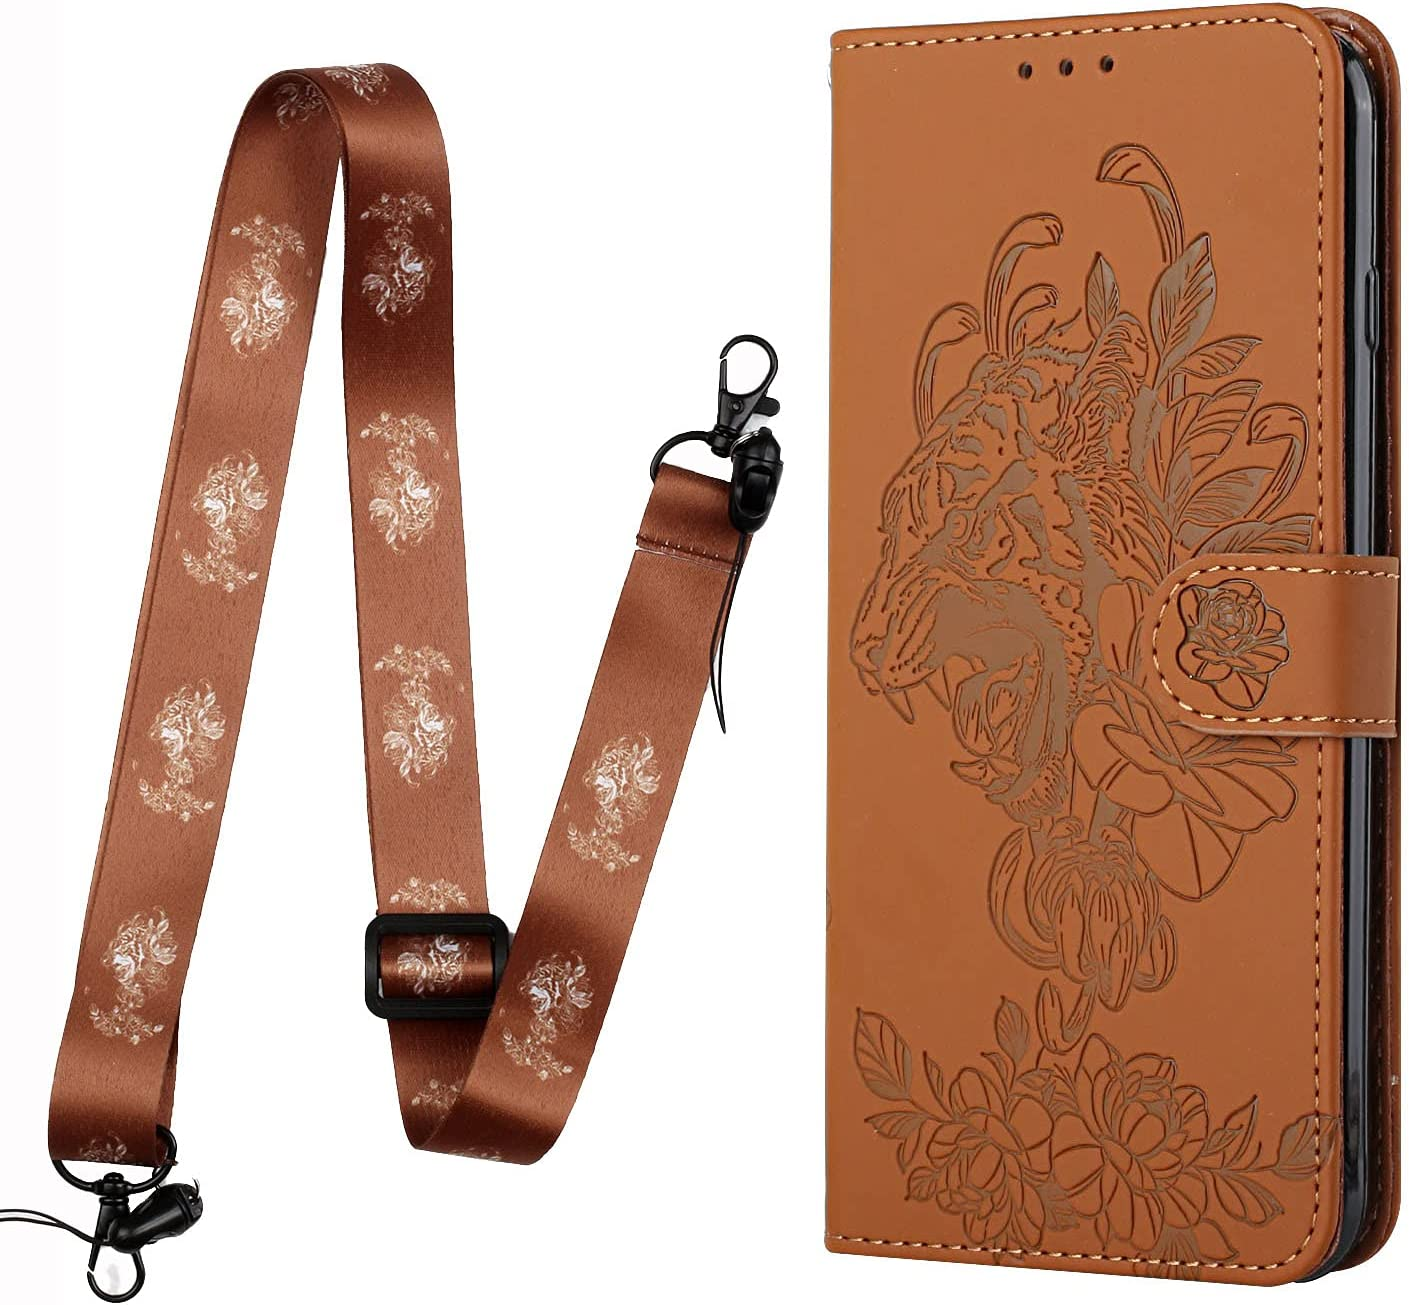 Crossbody Phone Case for Samsung Galaxy S20 Ultra, 2 in 1 Tiger Embossed Shockproof Slim PU Leather Wallet Phone Cover TPU Bumper Flip Protective Neck Strap Case with Lanyard, Brown